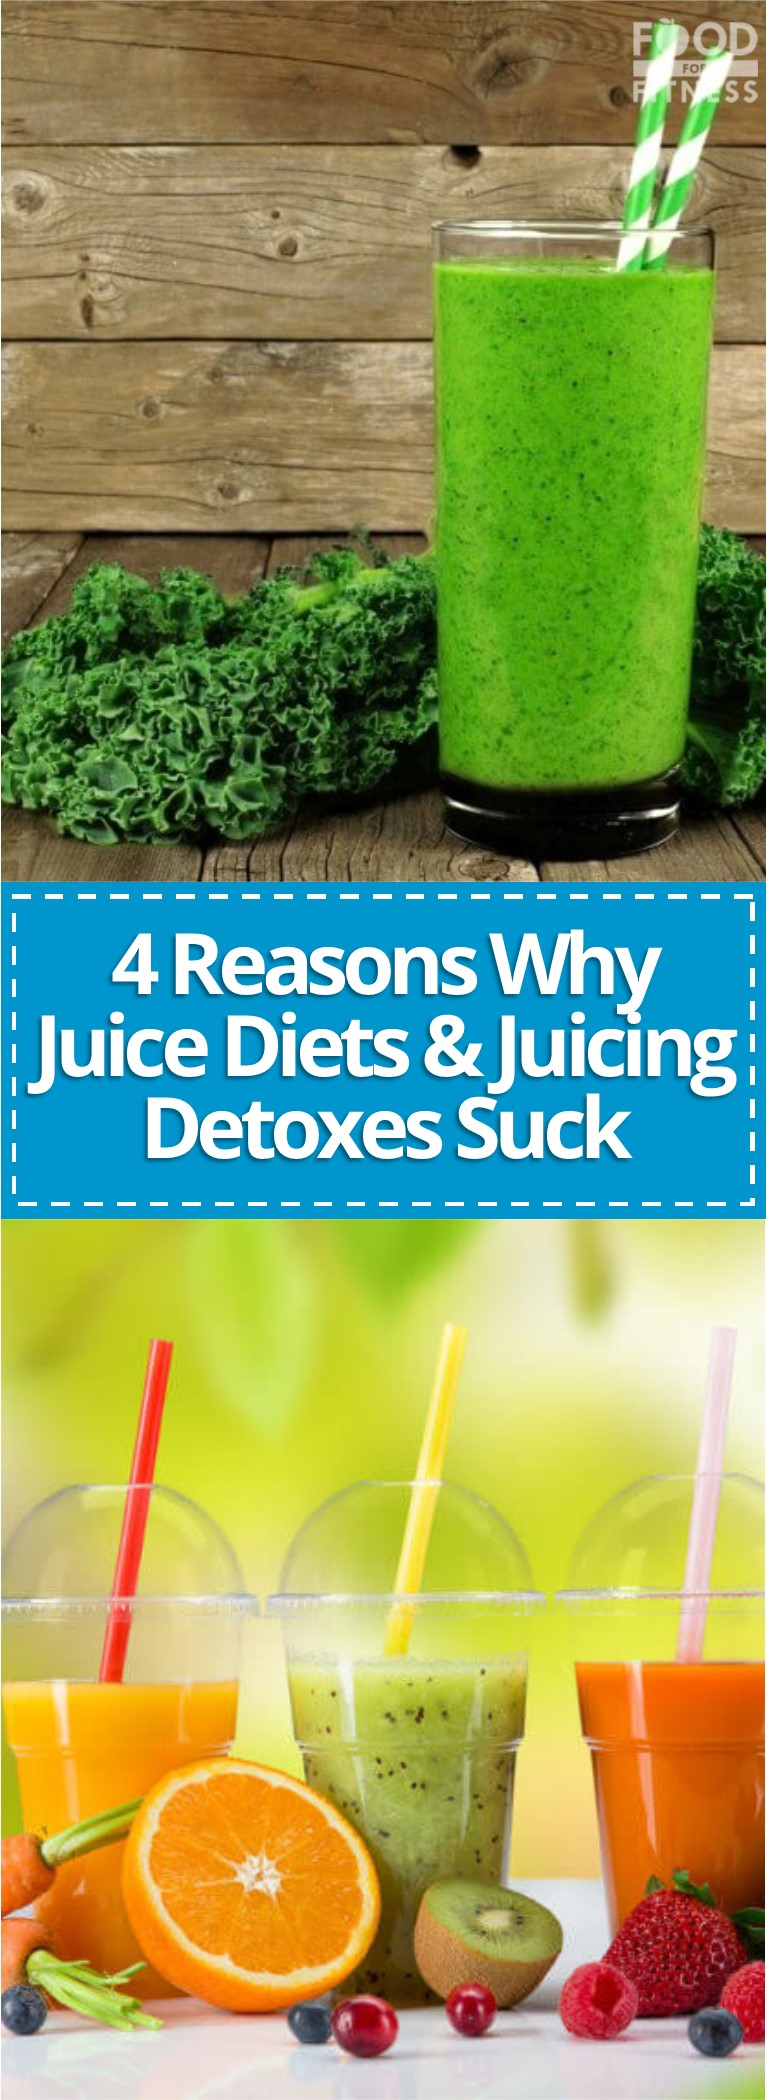 Juice Detoxes Suck - 4 Reasons Why Juicing Is NOT Good For Losing Fat!